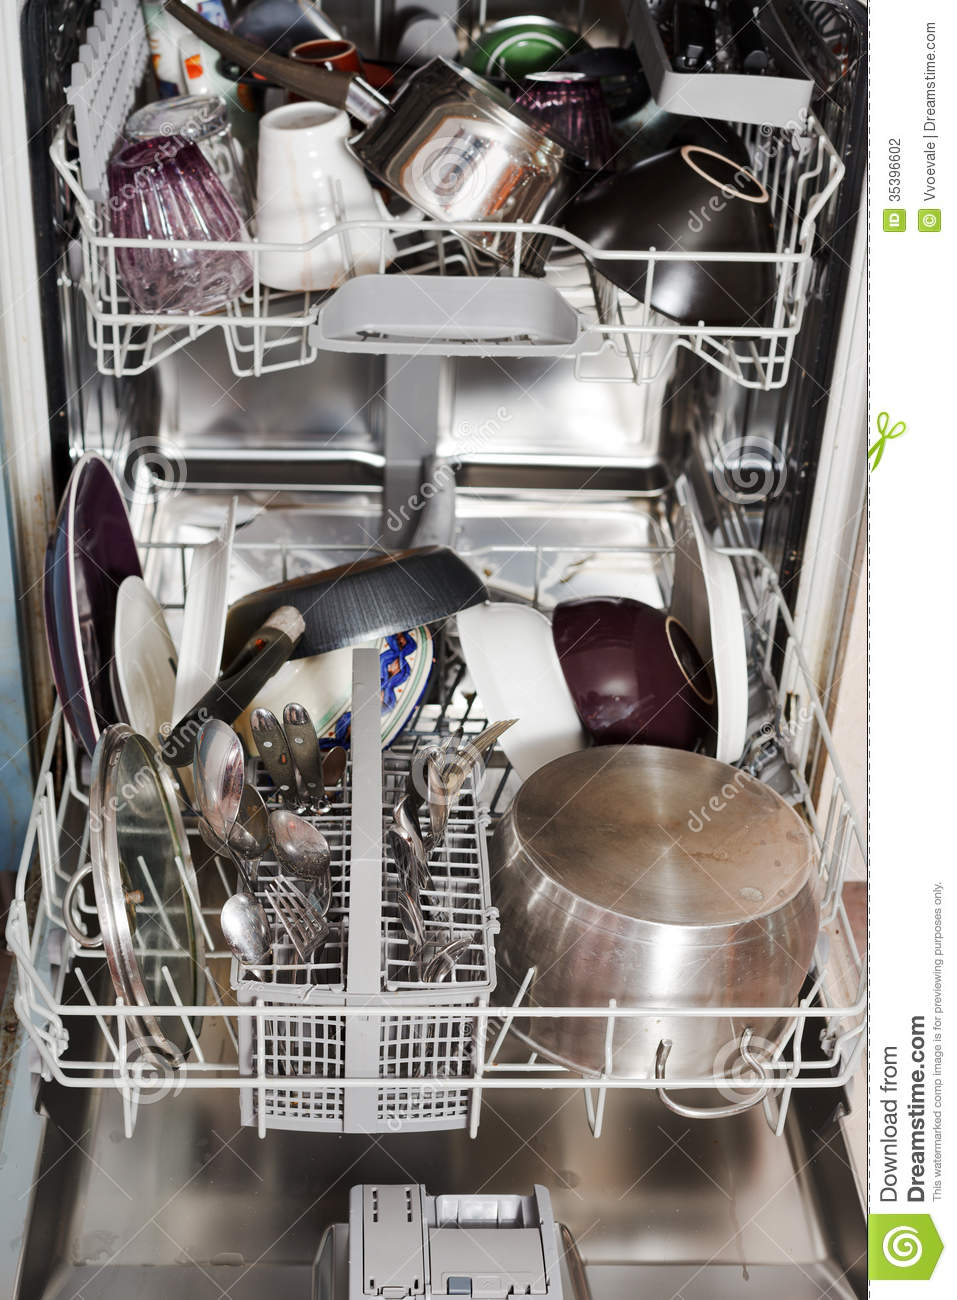 dirty cookware in home dishwasher stock photography image 35396602. Black Bedroom Furniture Sets. Home Design Ideas